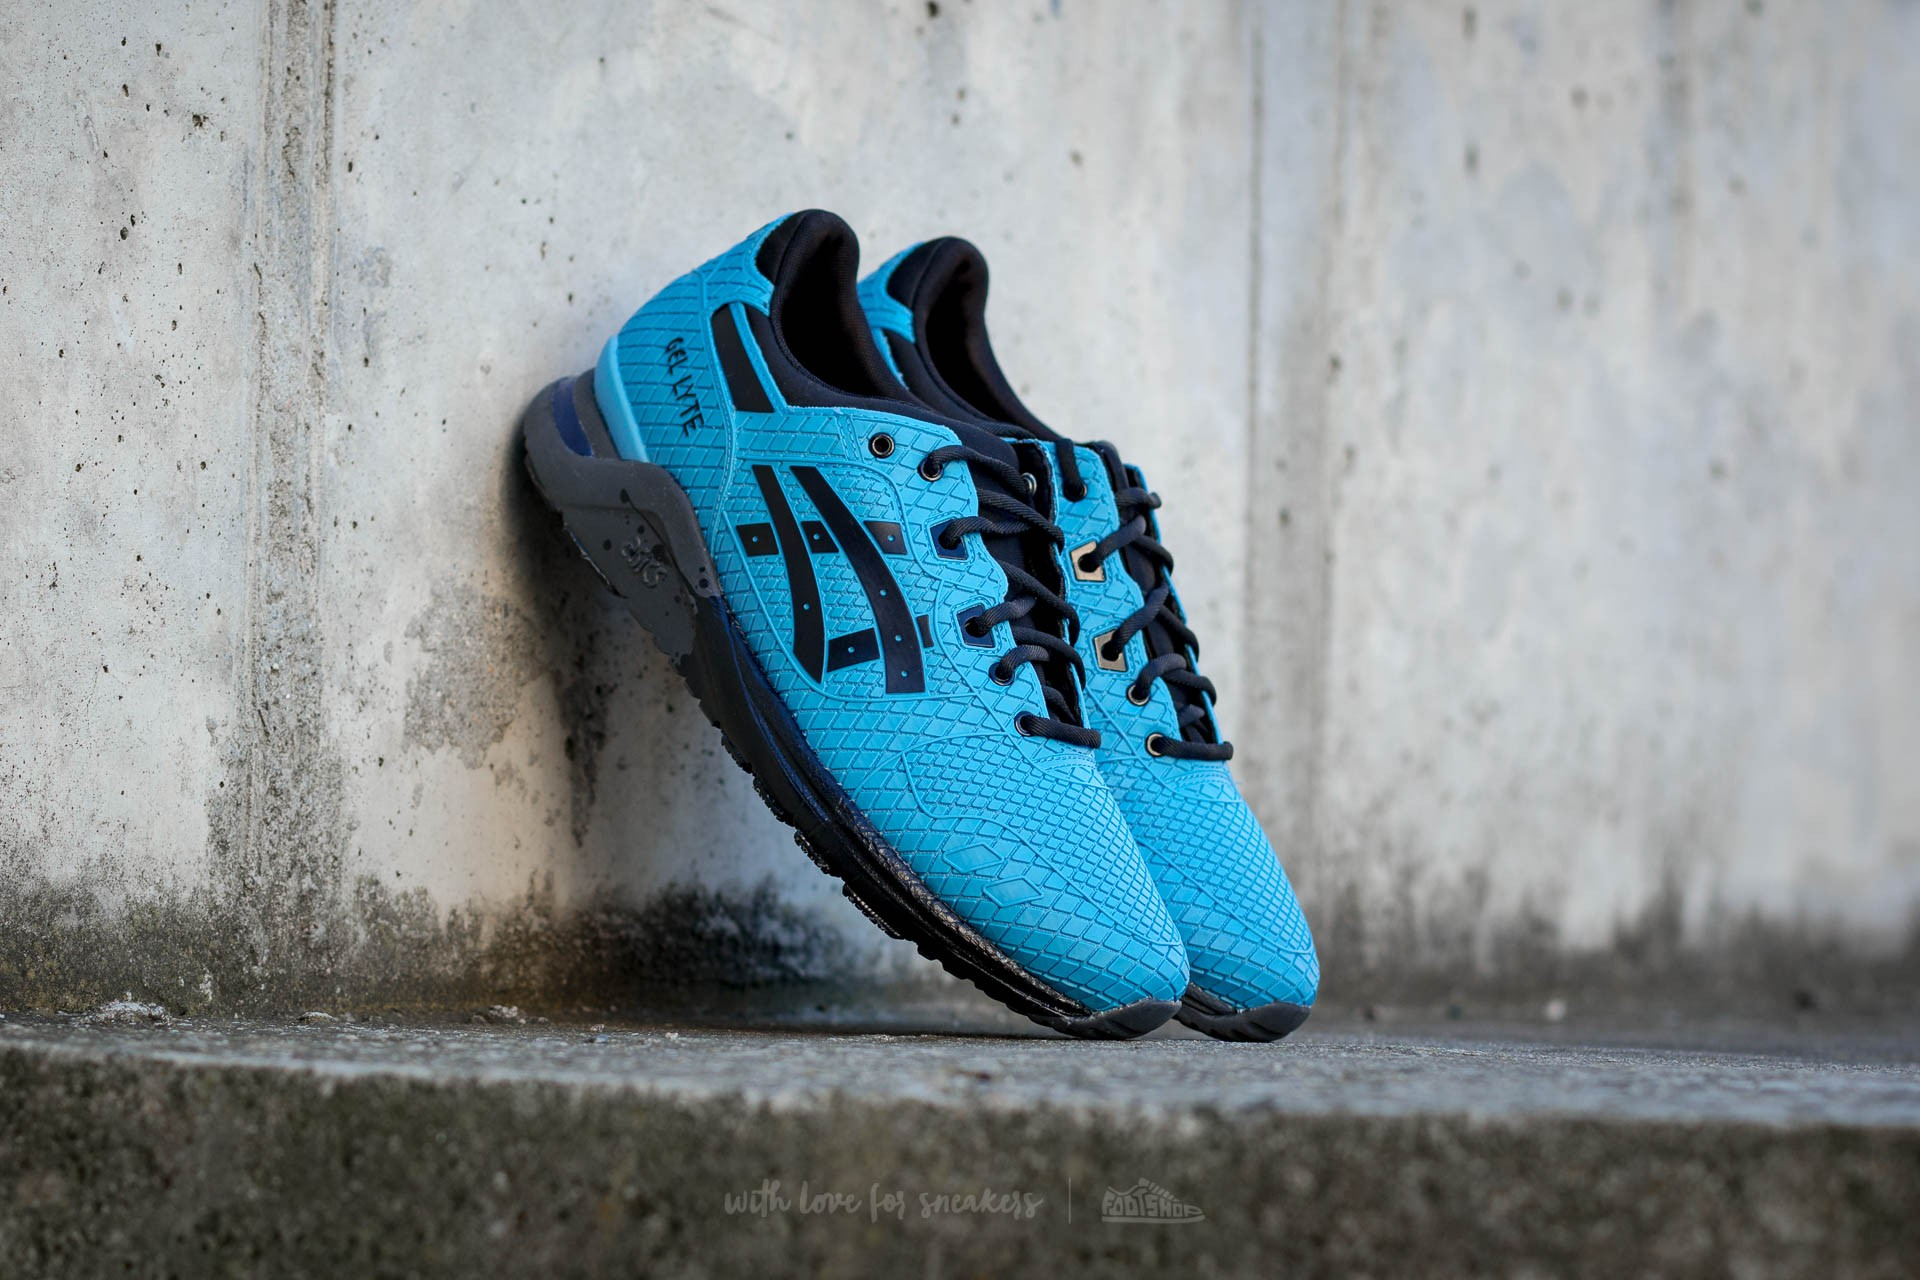 nouveau produit be747 cce25 Asics Gel-Lyte Evo Light Blue/ Black | Footshop